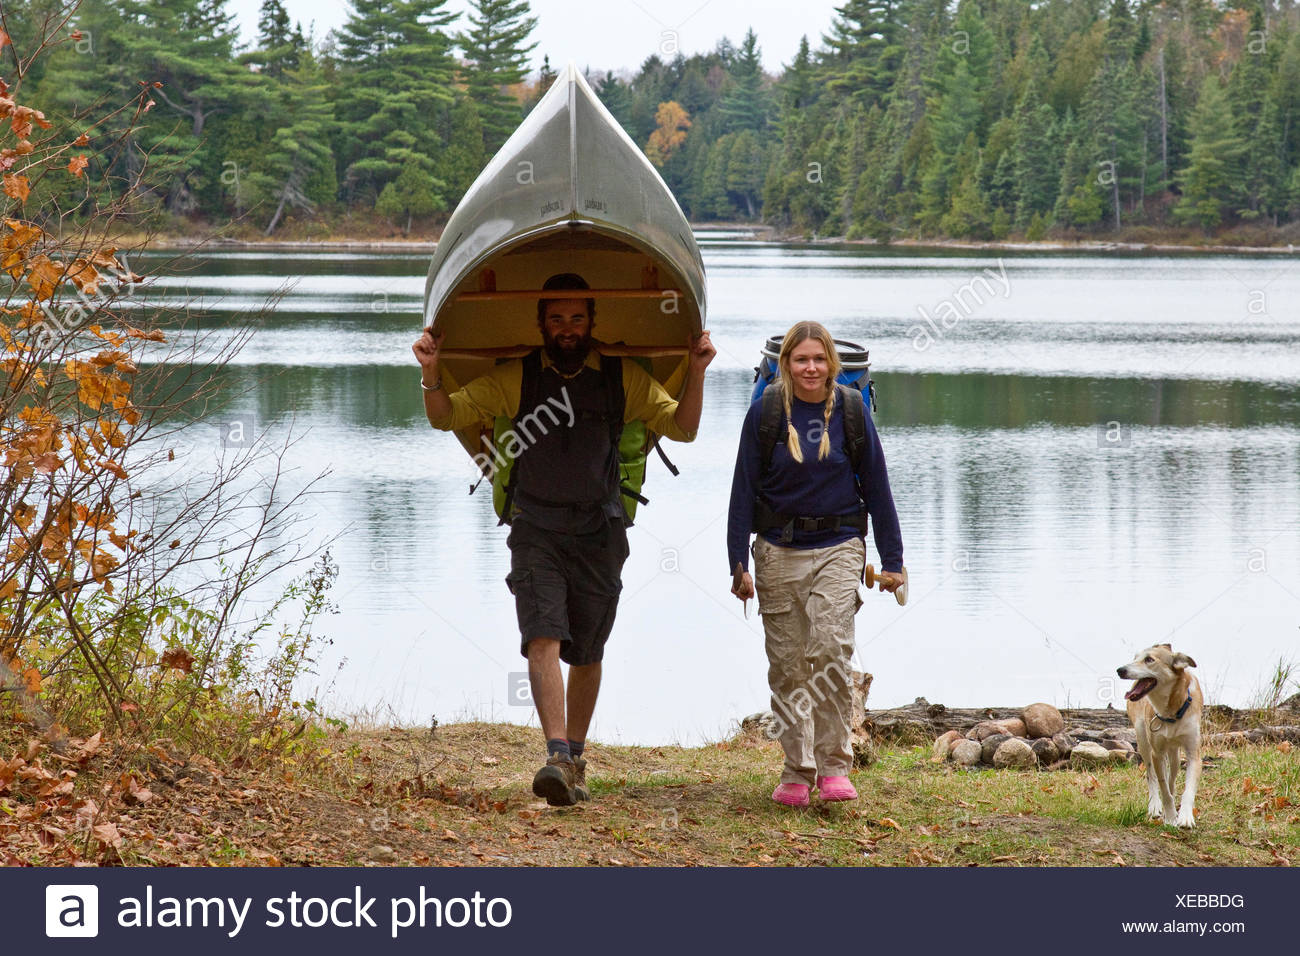 Young couple portage canoe from small lake in northwestern end of Algonquin Park, Ontario, Canada. - Stock Image